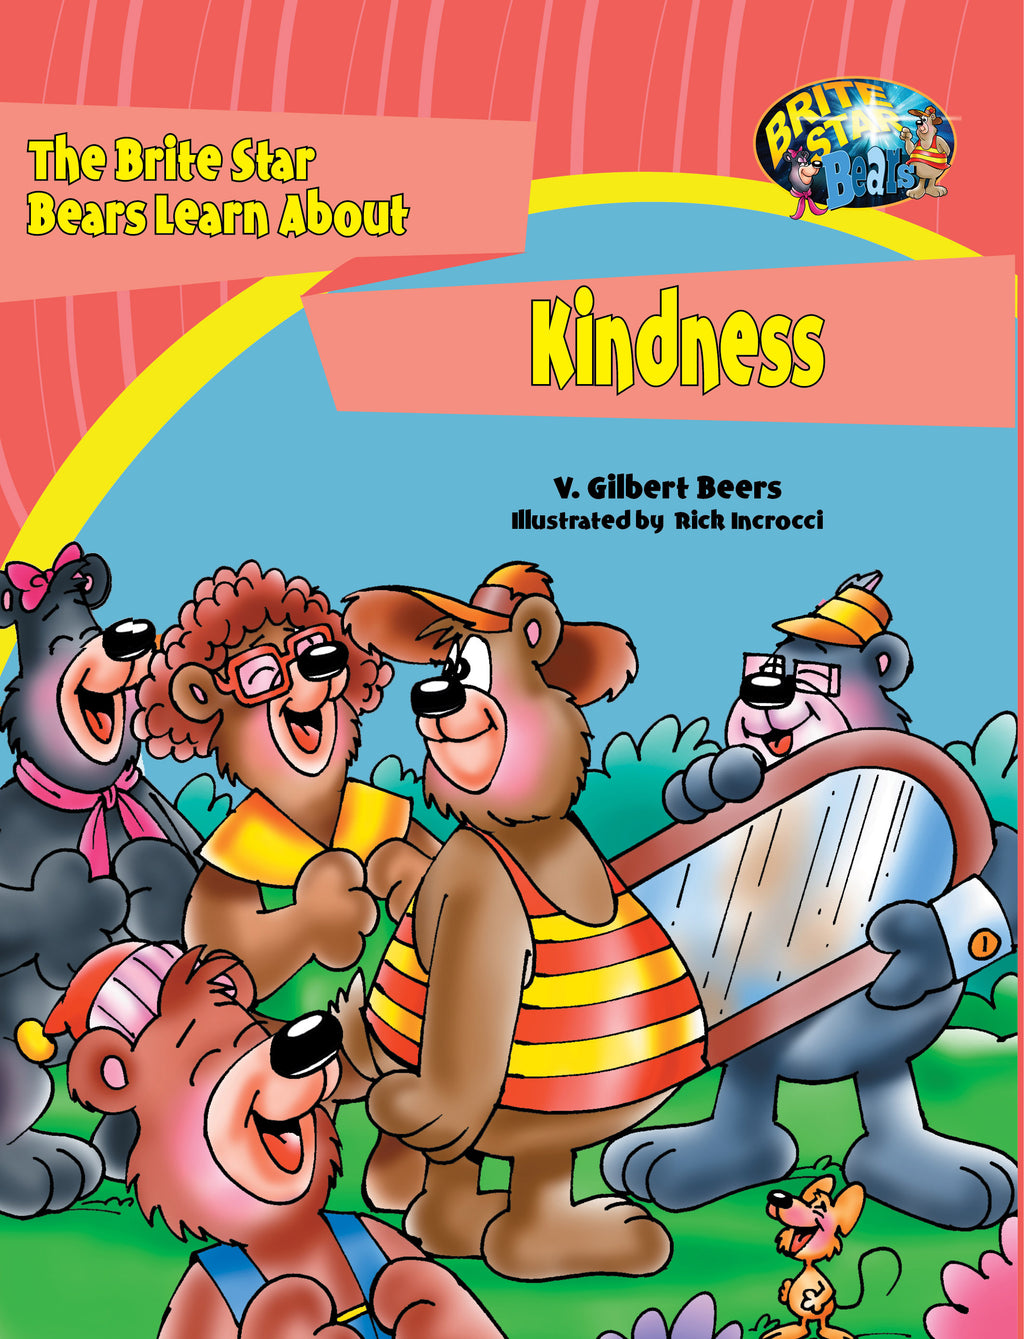 The Bears of Brite Star Learn About Kindness